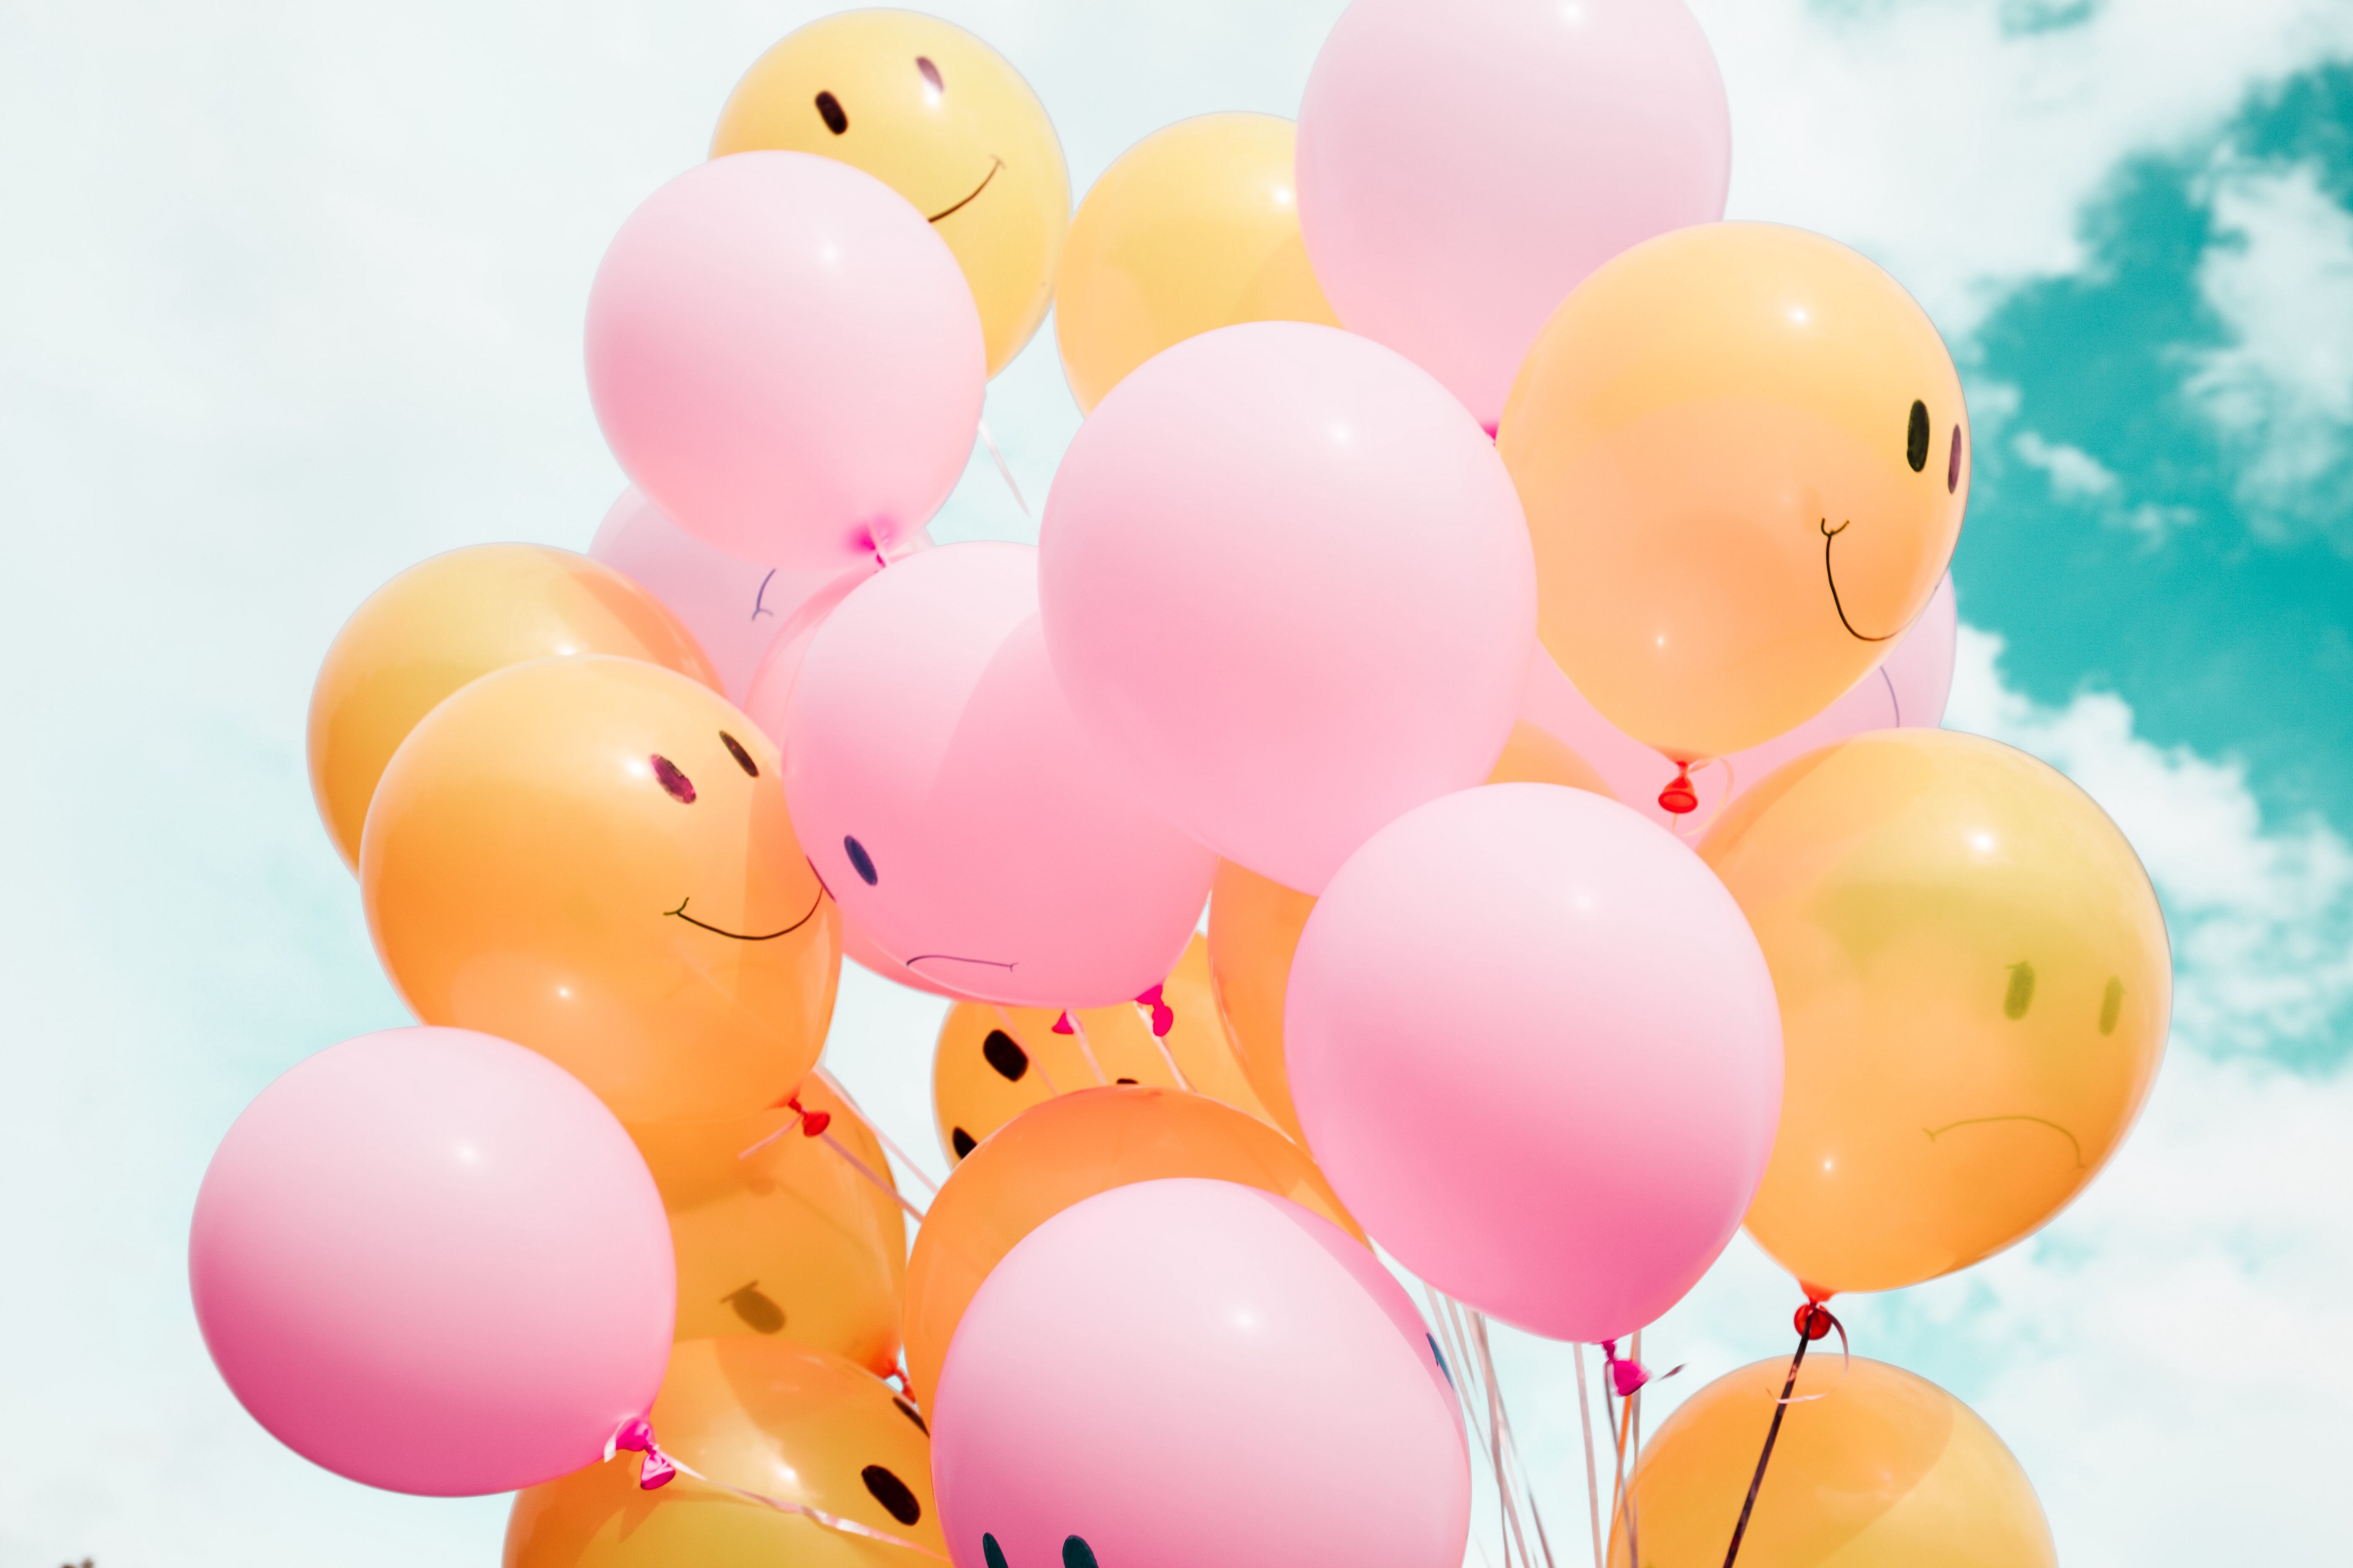 Photo showing a collection of balloons with a sky background. Half of the balloons are yellow with a happy smilie face, the other half are pink with a sad smilie face.